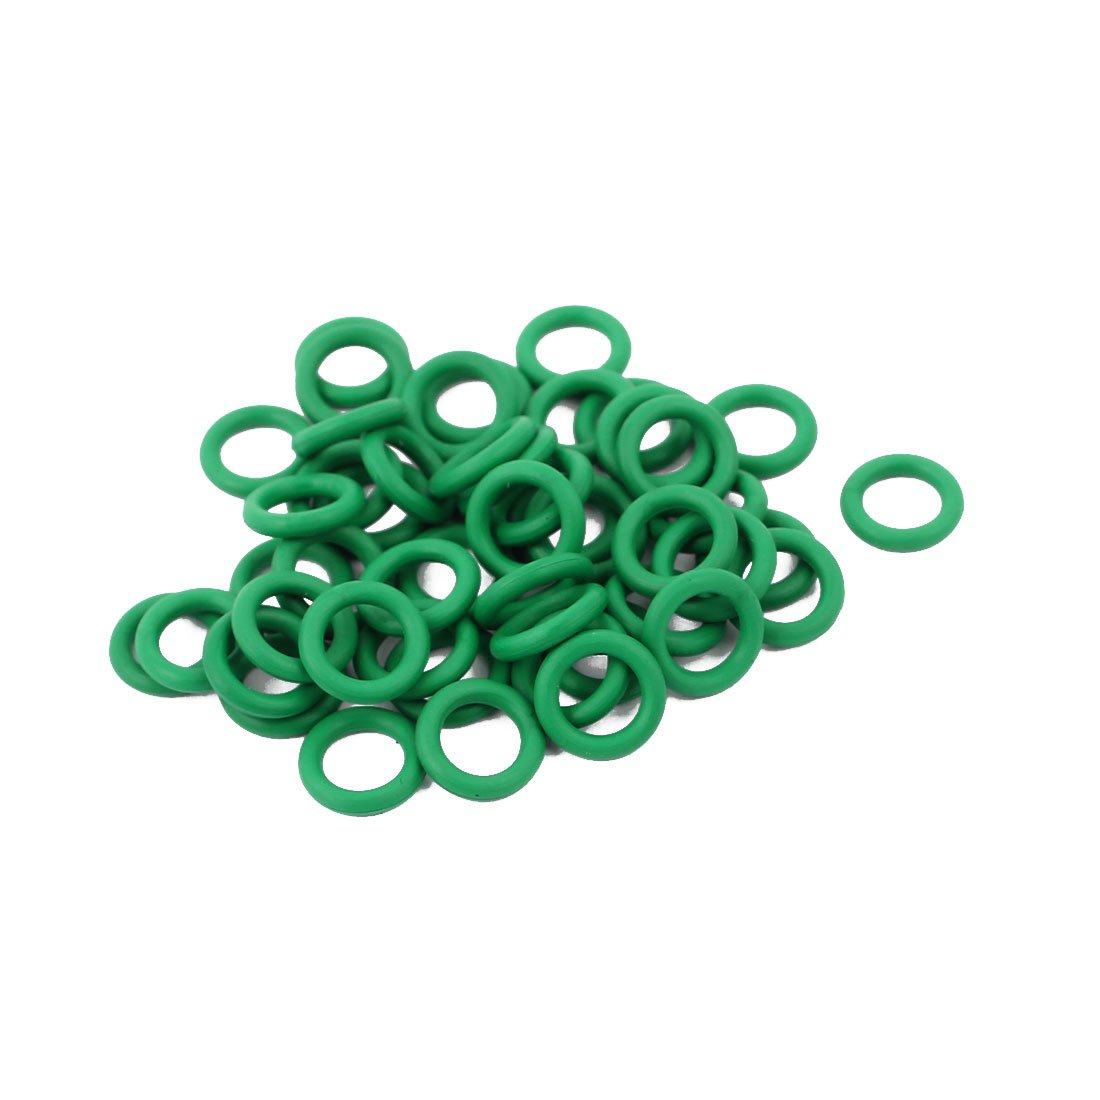 uxcell 50pcs 8mmx1.5mm Heat Resistant Mini Green O-Ring Rubber Sealing Ring